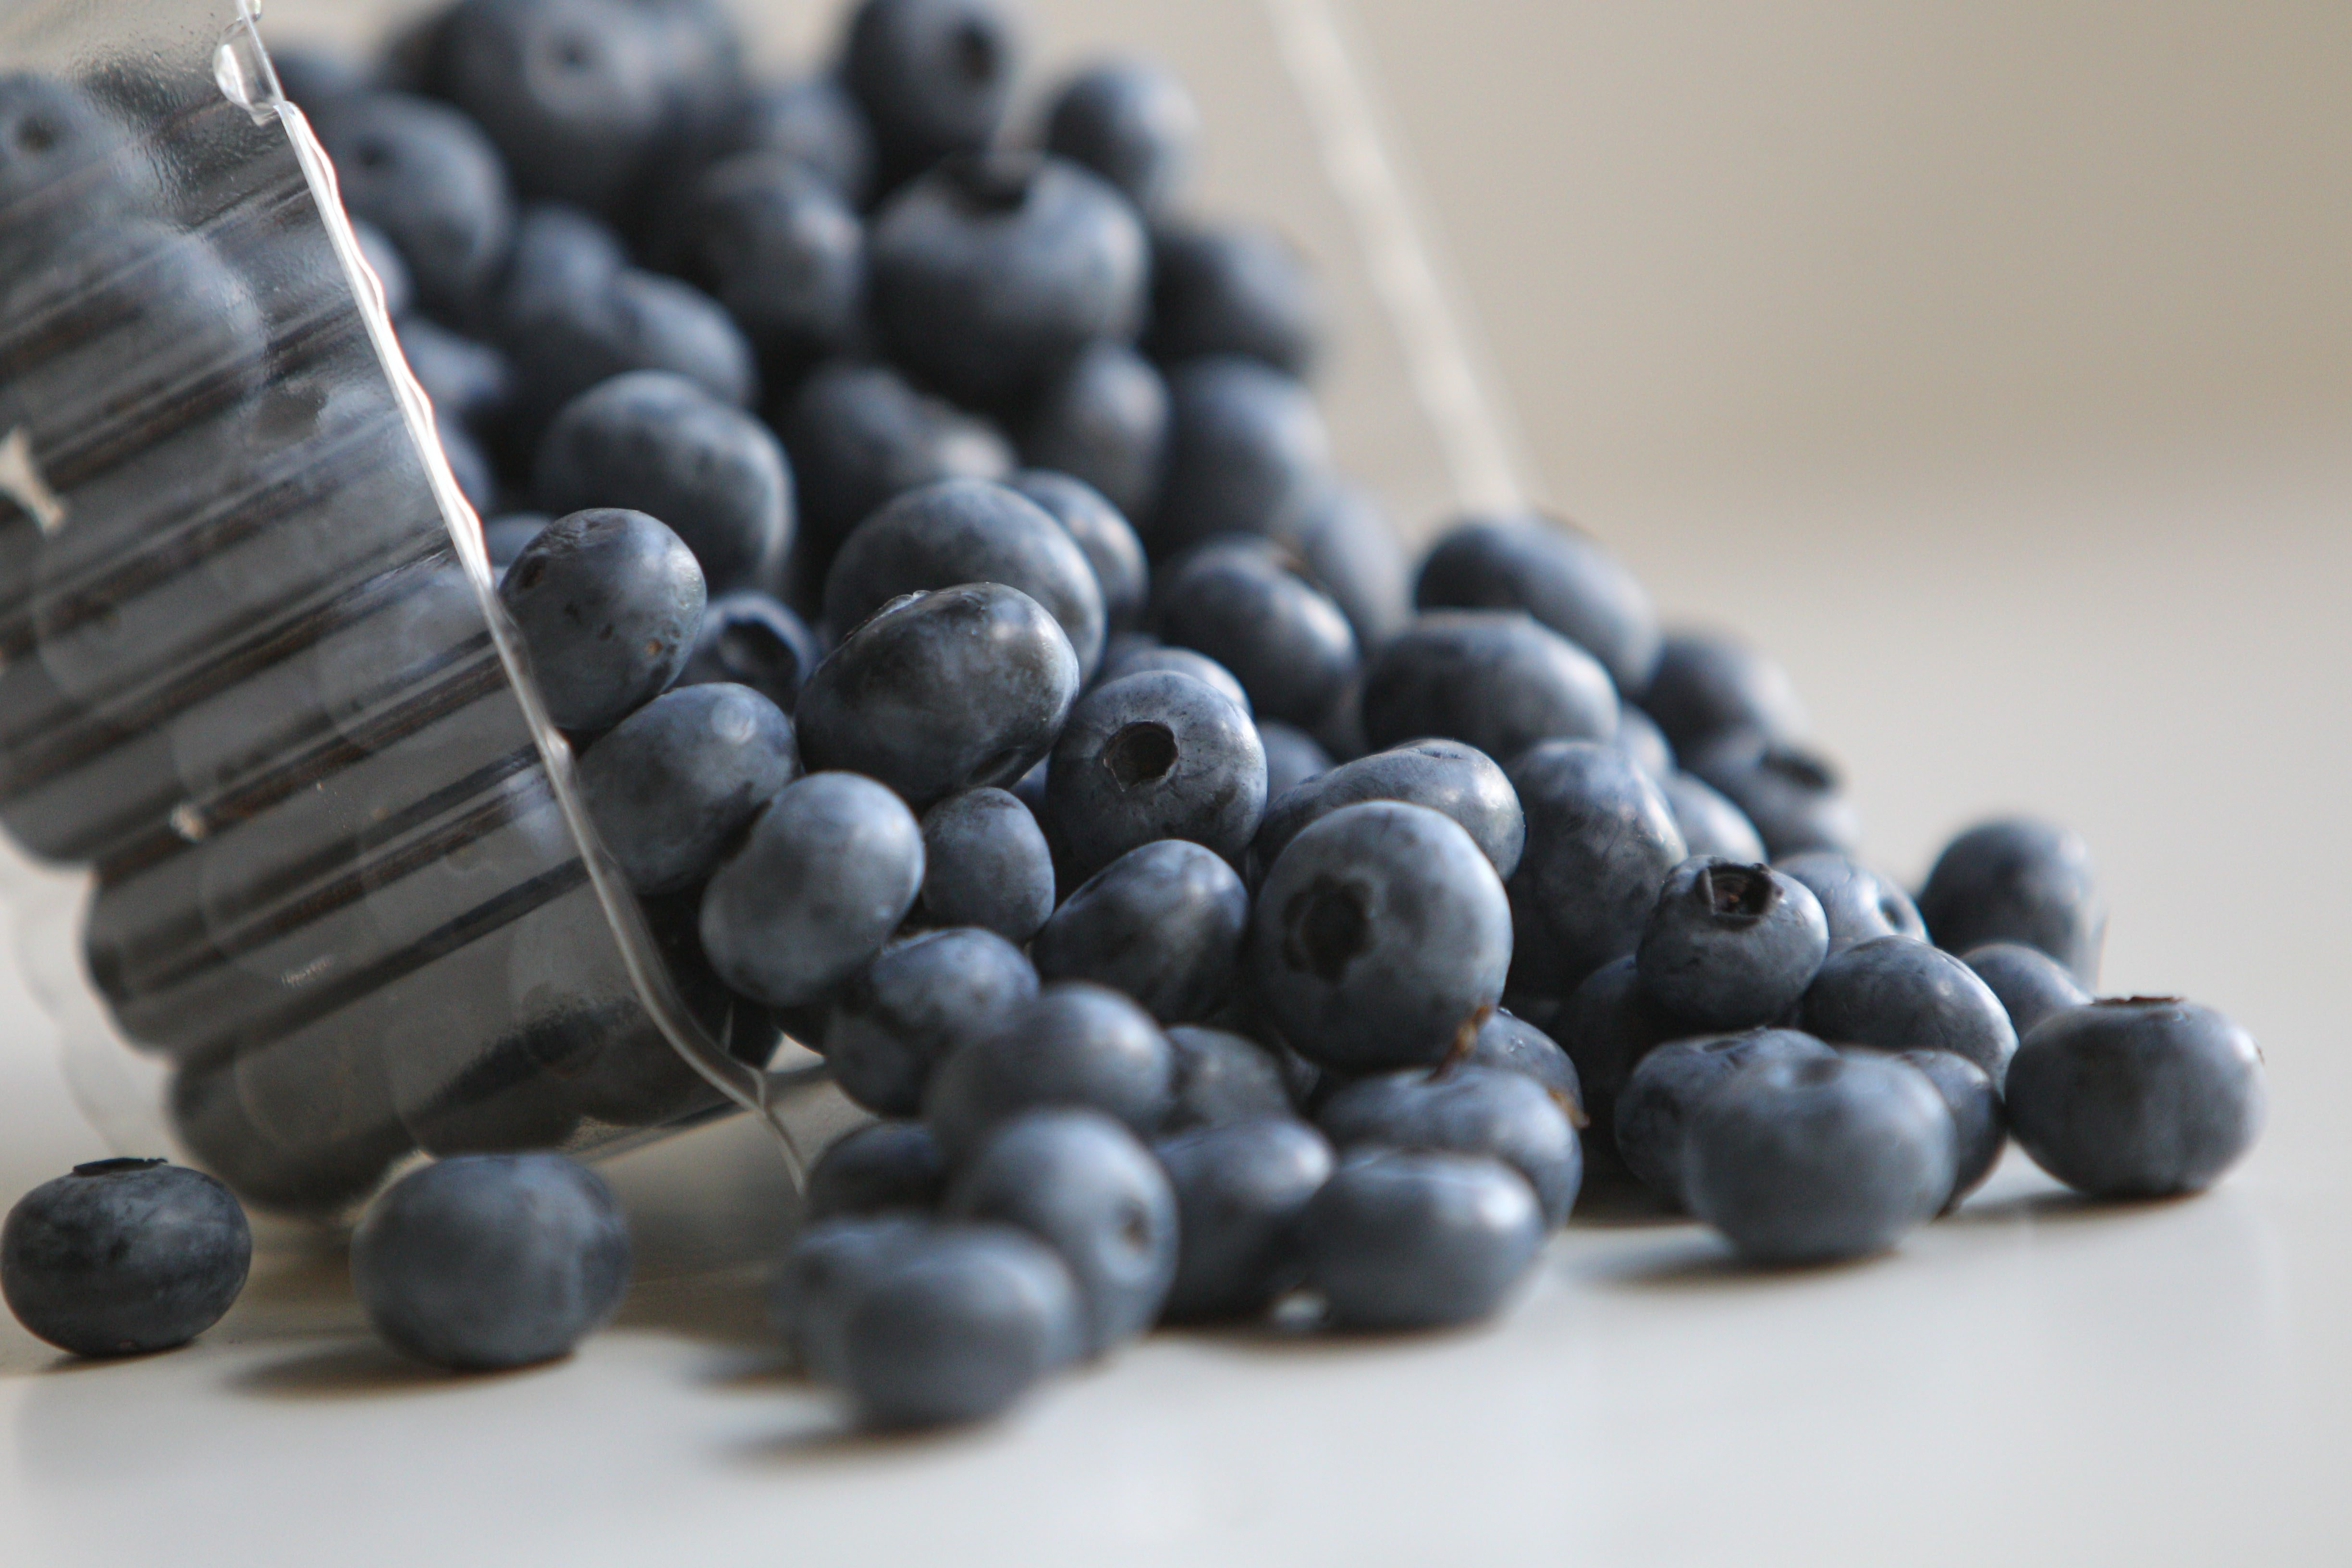 What's not to love about blueberries? They are easy to pick, a cinch to freeze – and they're good for you.